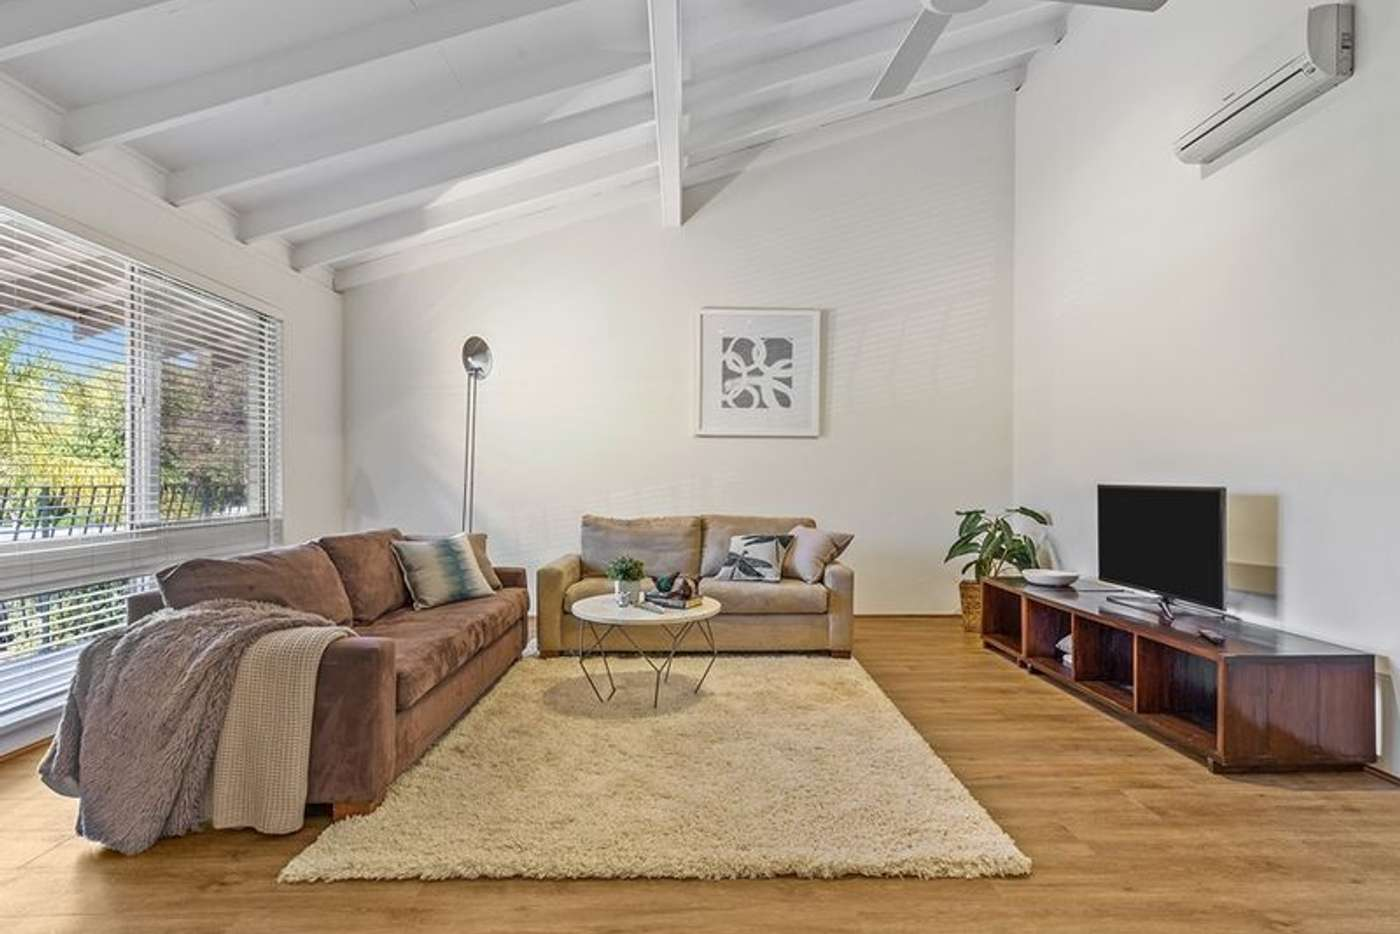 Main view of Homely apartment listing, 11/147 Derby Road, Shenton Park WA 6008